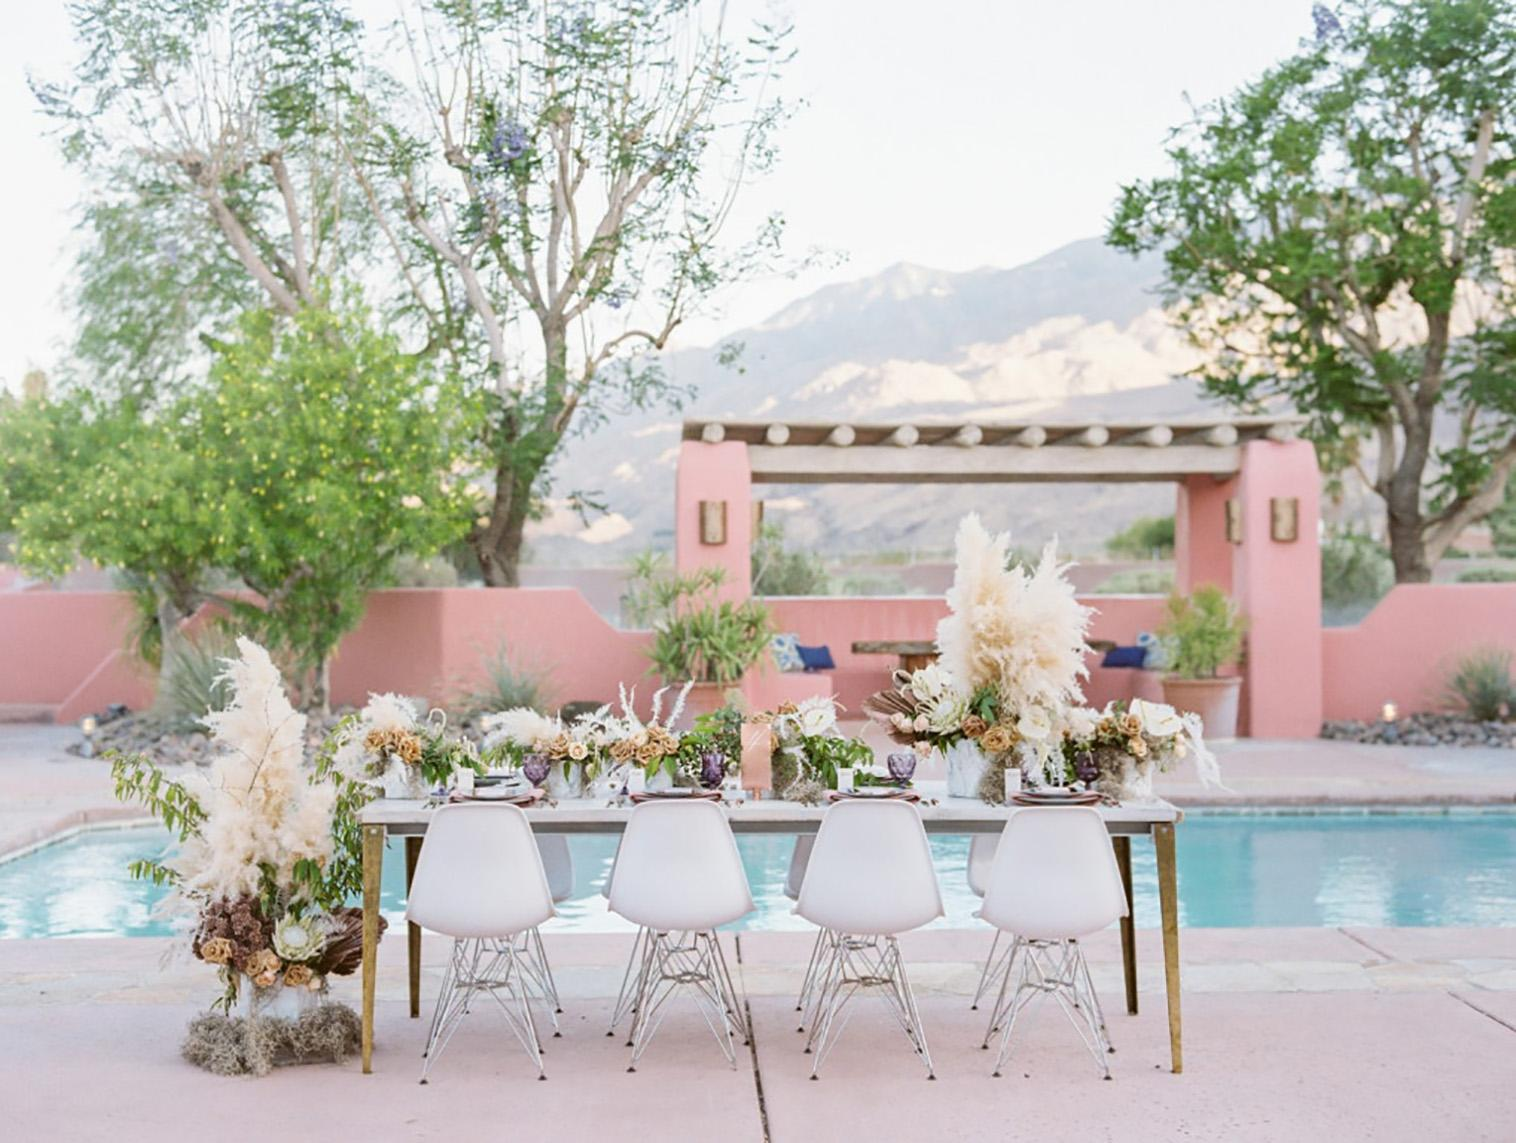 Our Favorite Venues To Host The California Pool Party Of Your Dreams